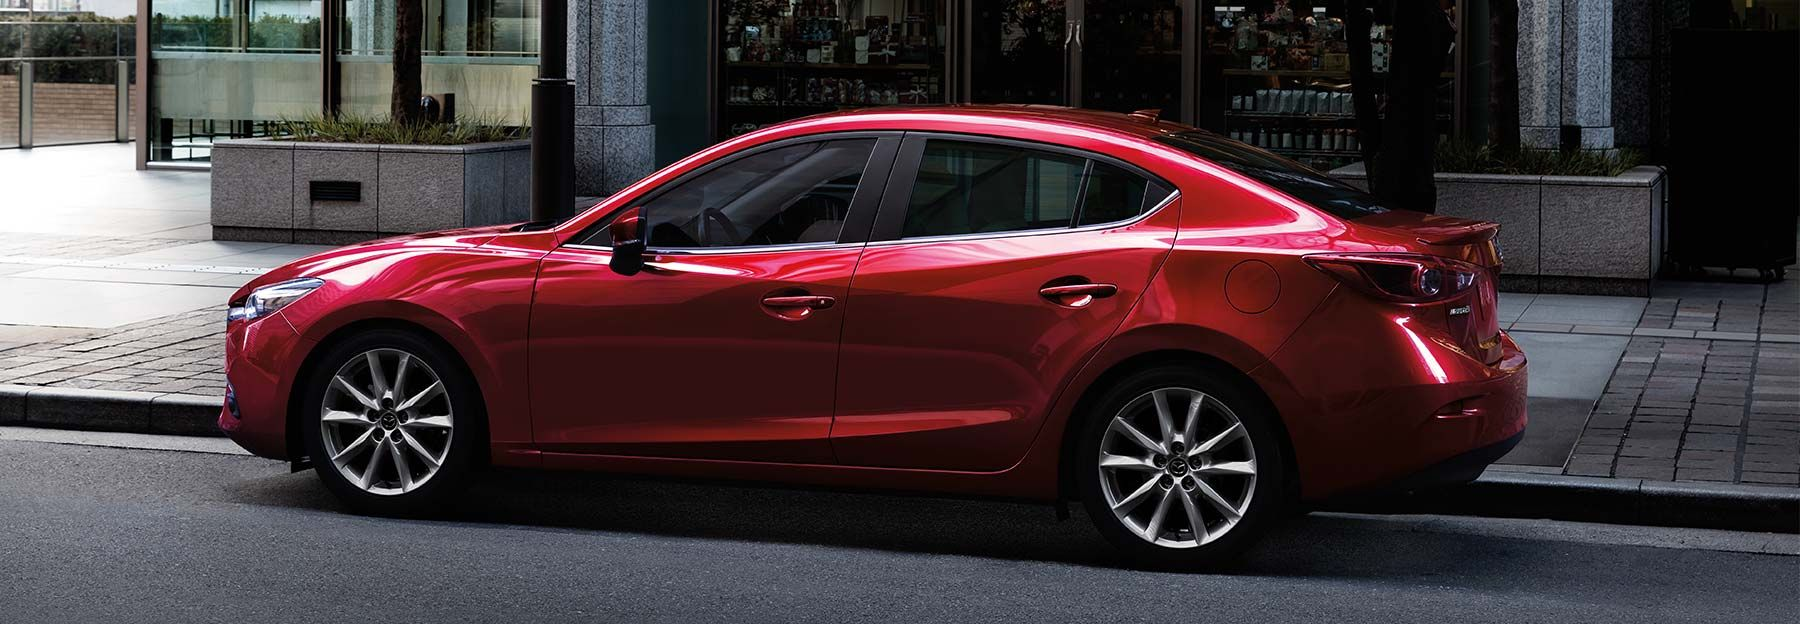 2018 Mazda3 Financing near Macon, GA